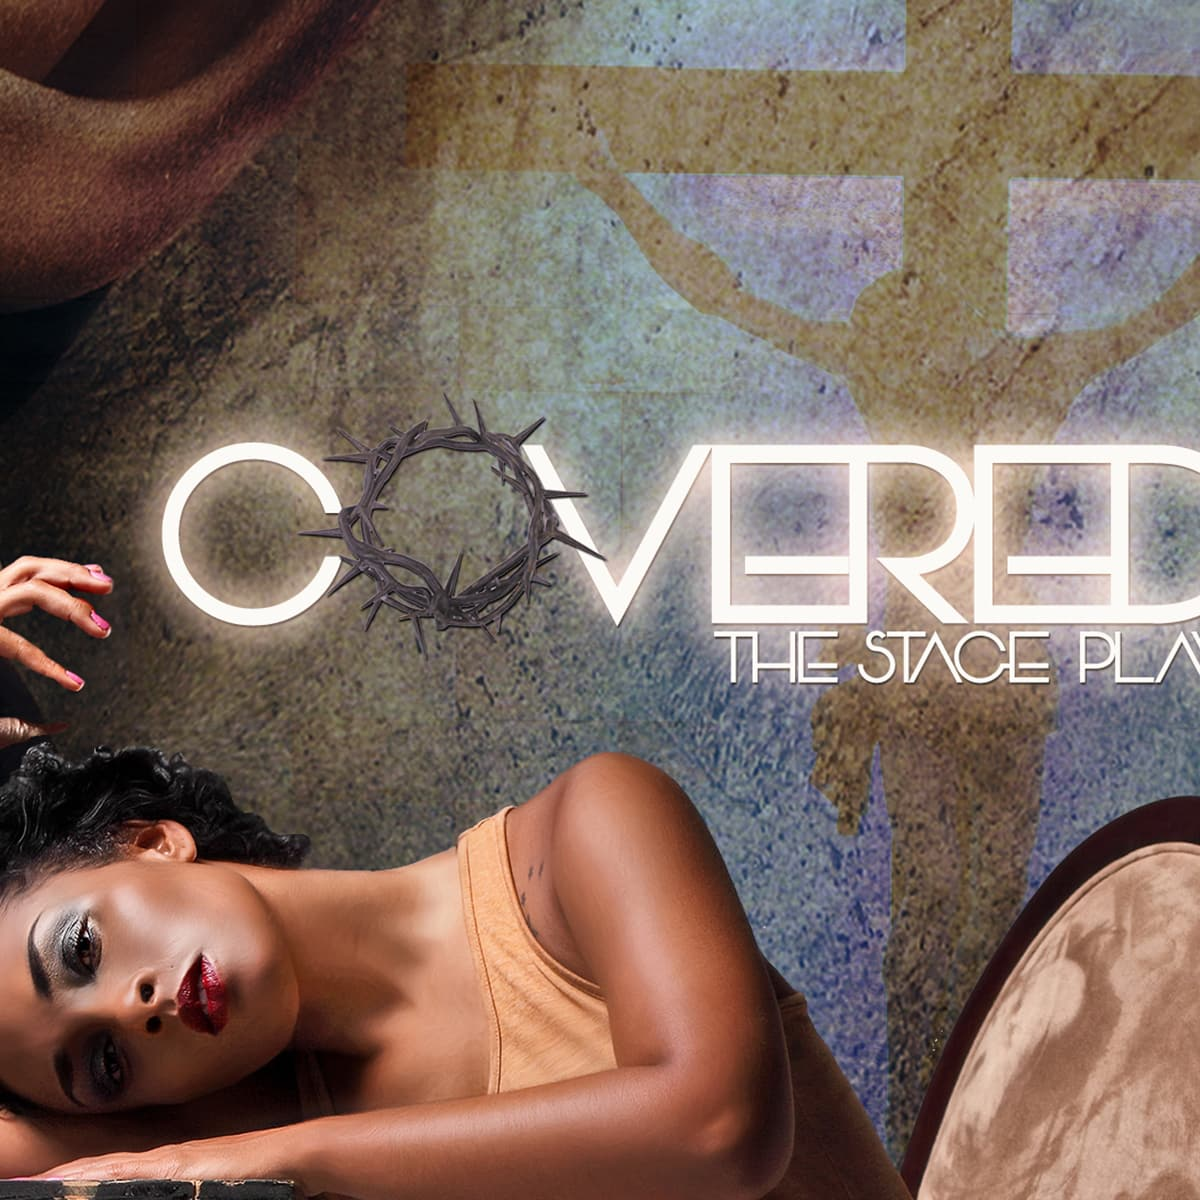 Noble Collections presents Covered